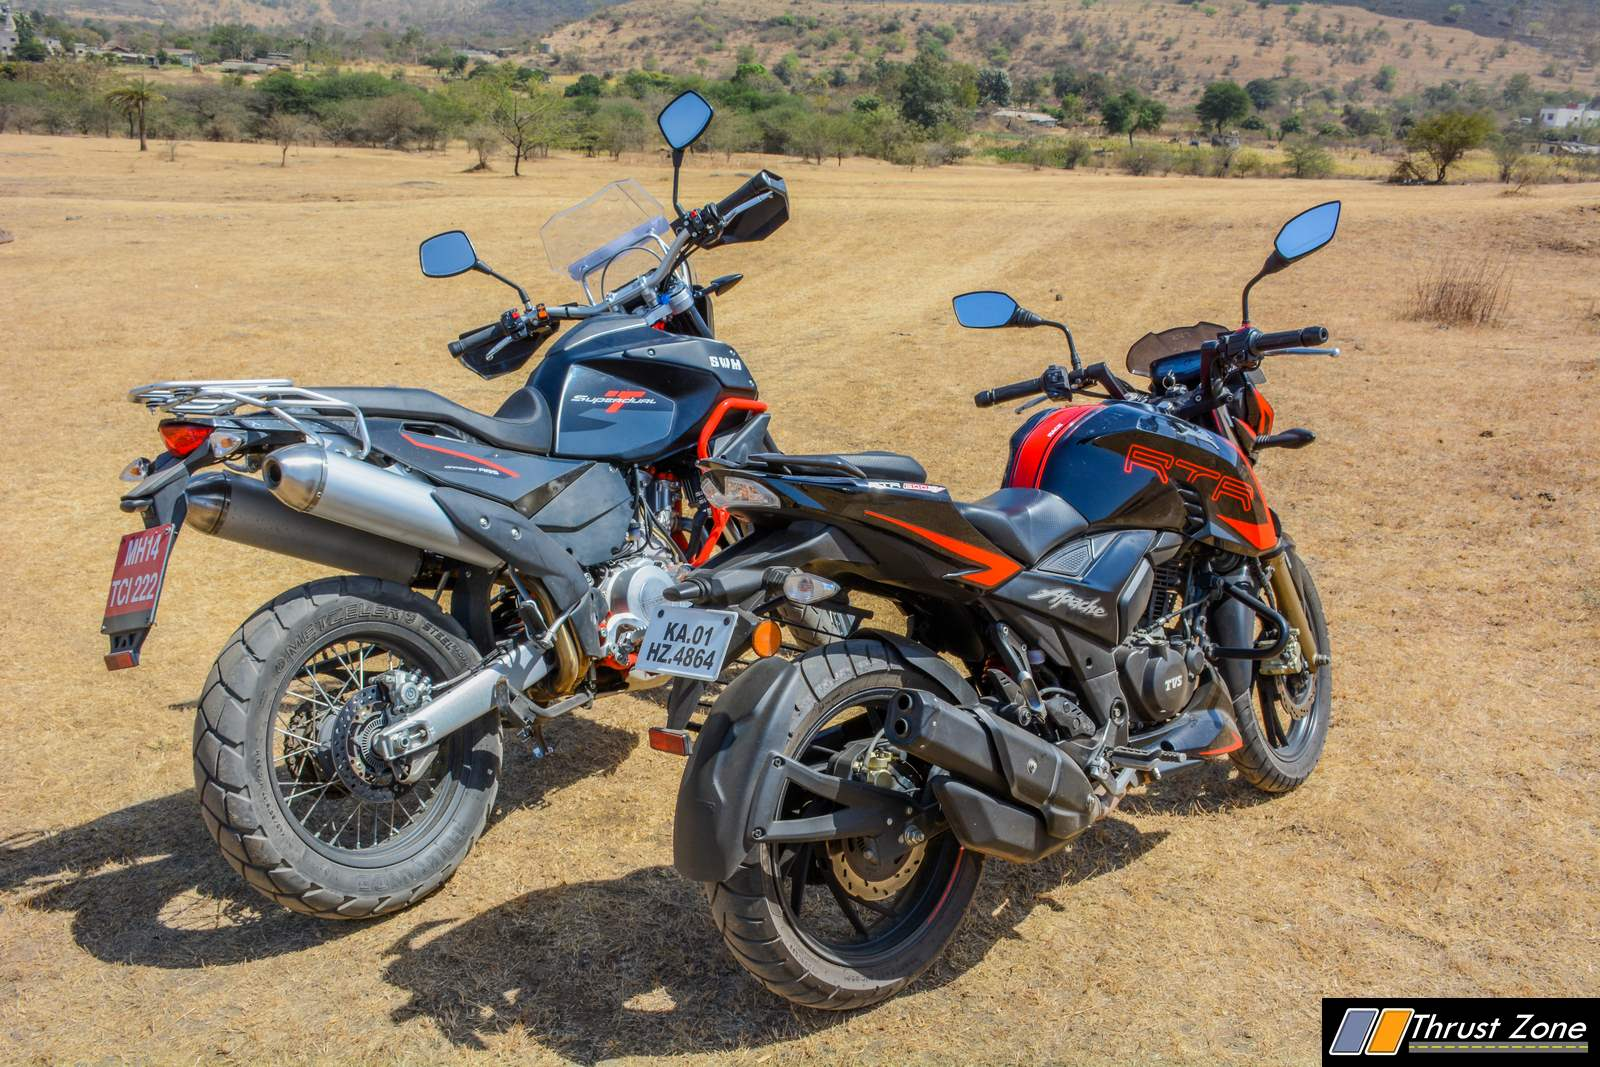 https://www.thrustzone.com/wp-content/uploads/2019/03/2019-Apache-RTR-200-Race-Edition-Review-17.jpg